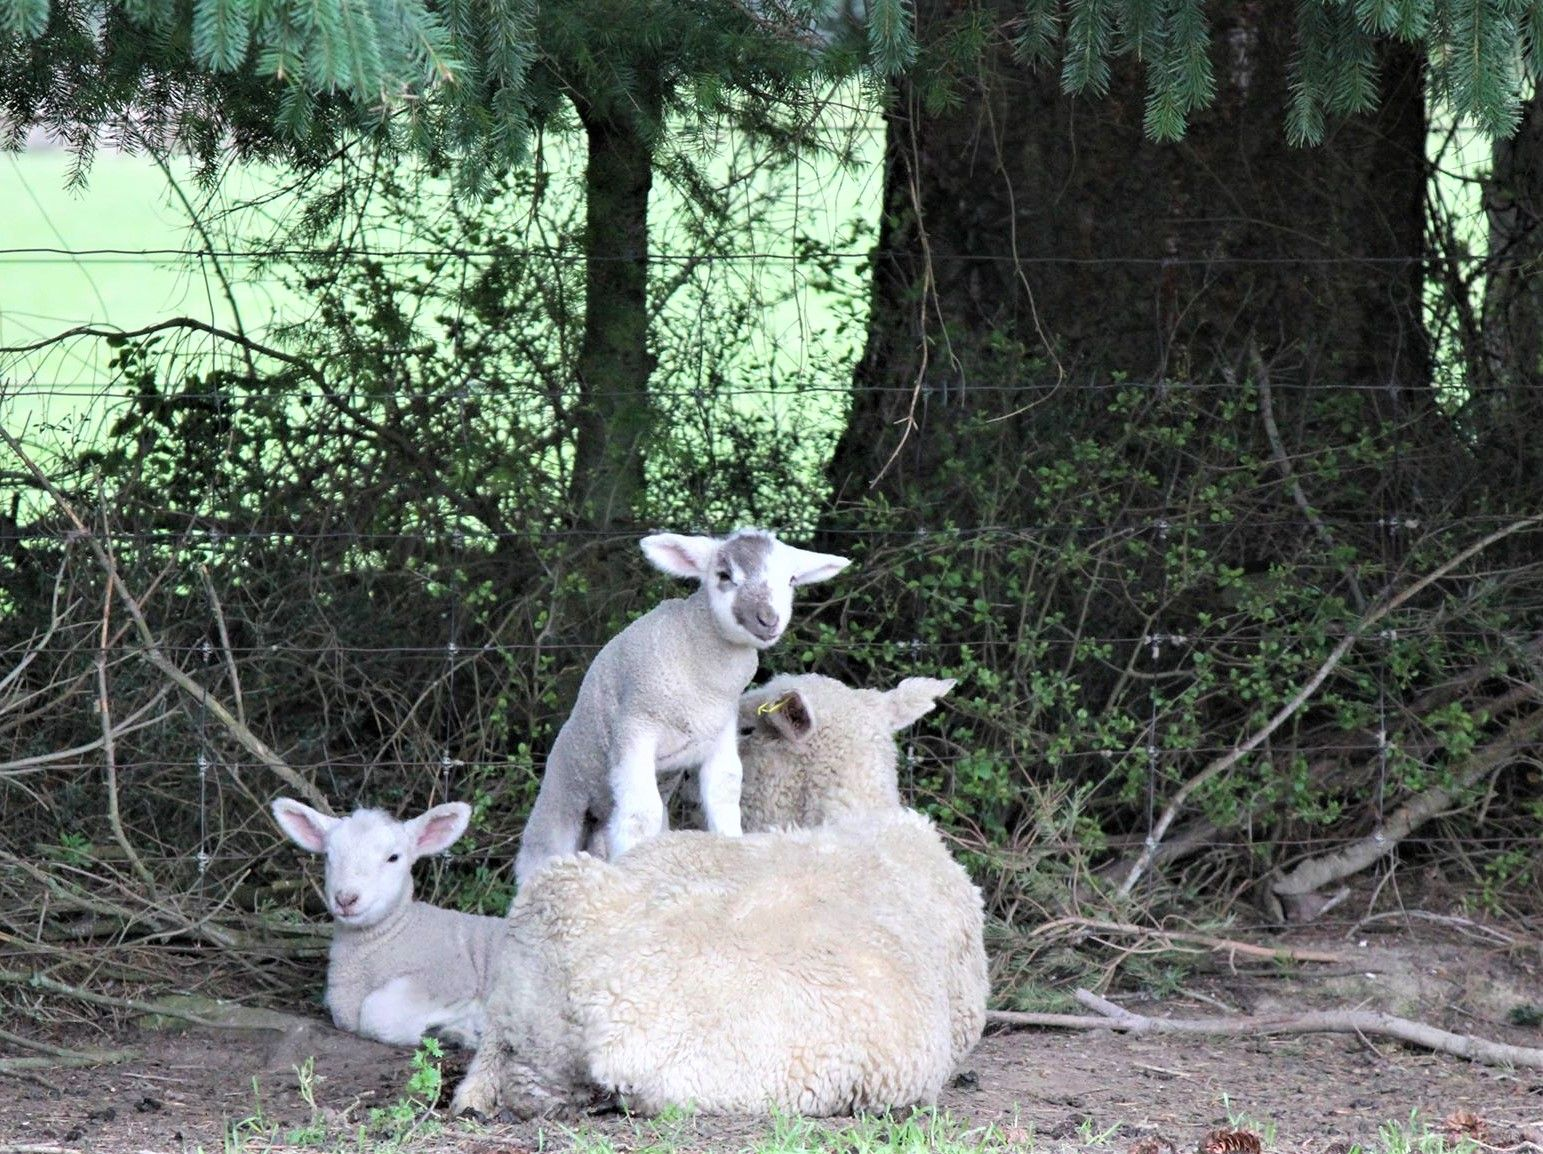 Ewe and lambs sheltering under a tree at lambing time.